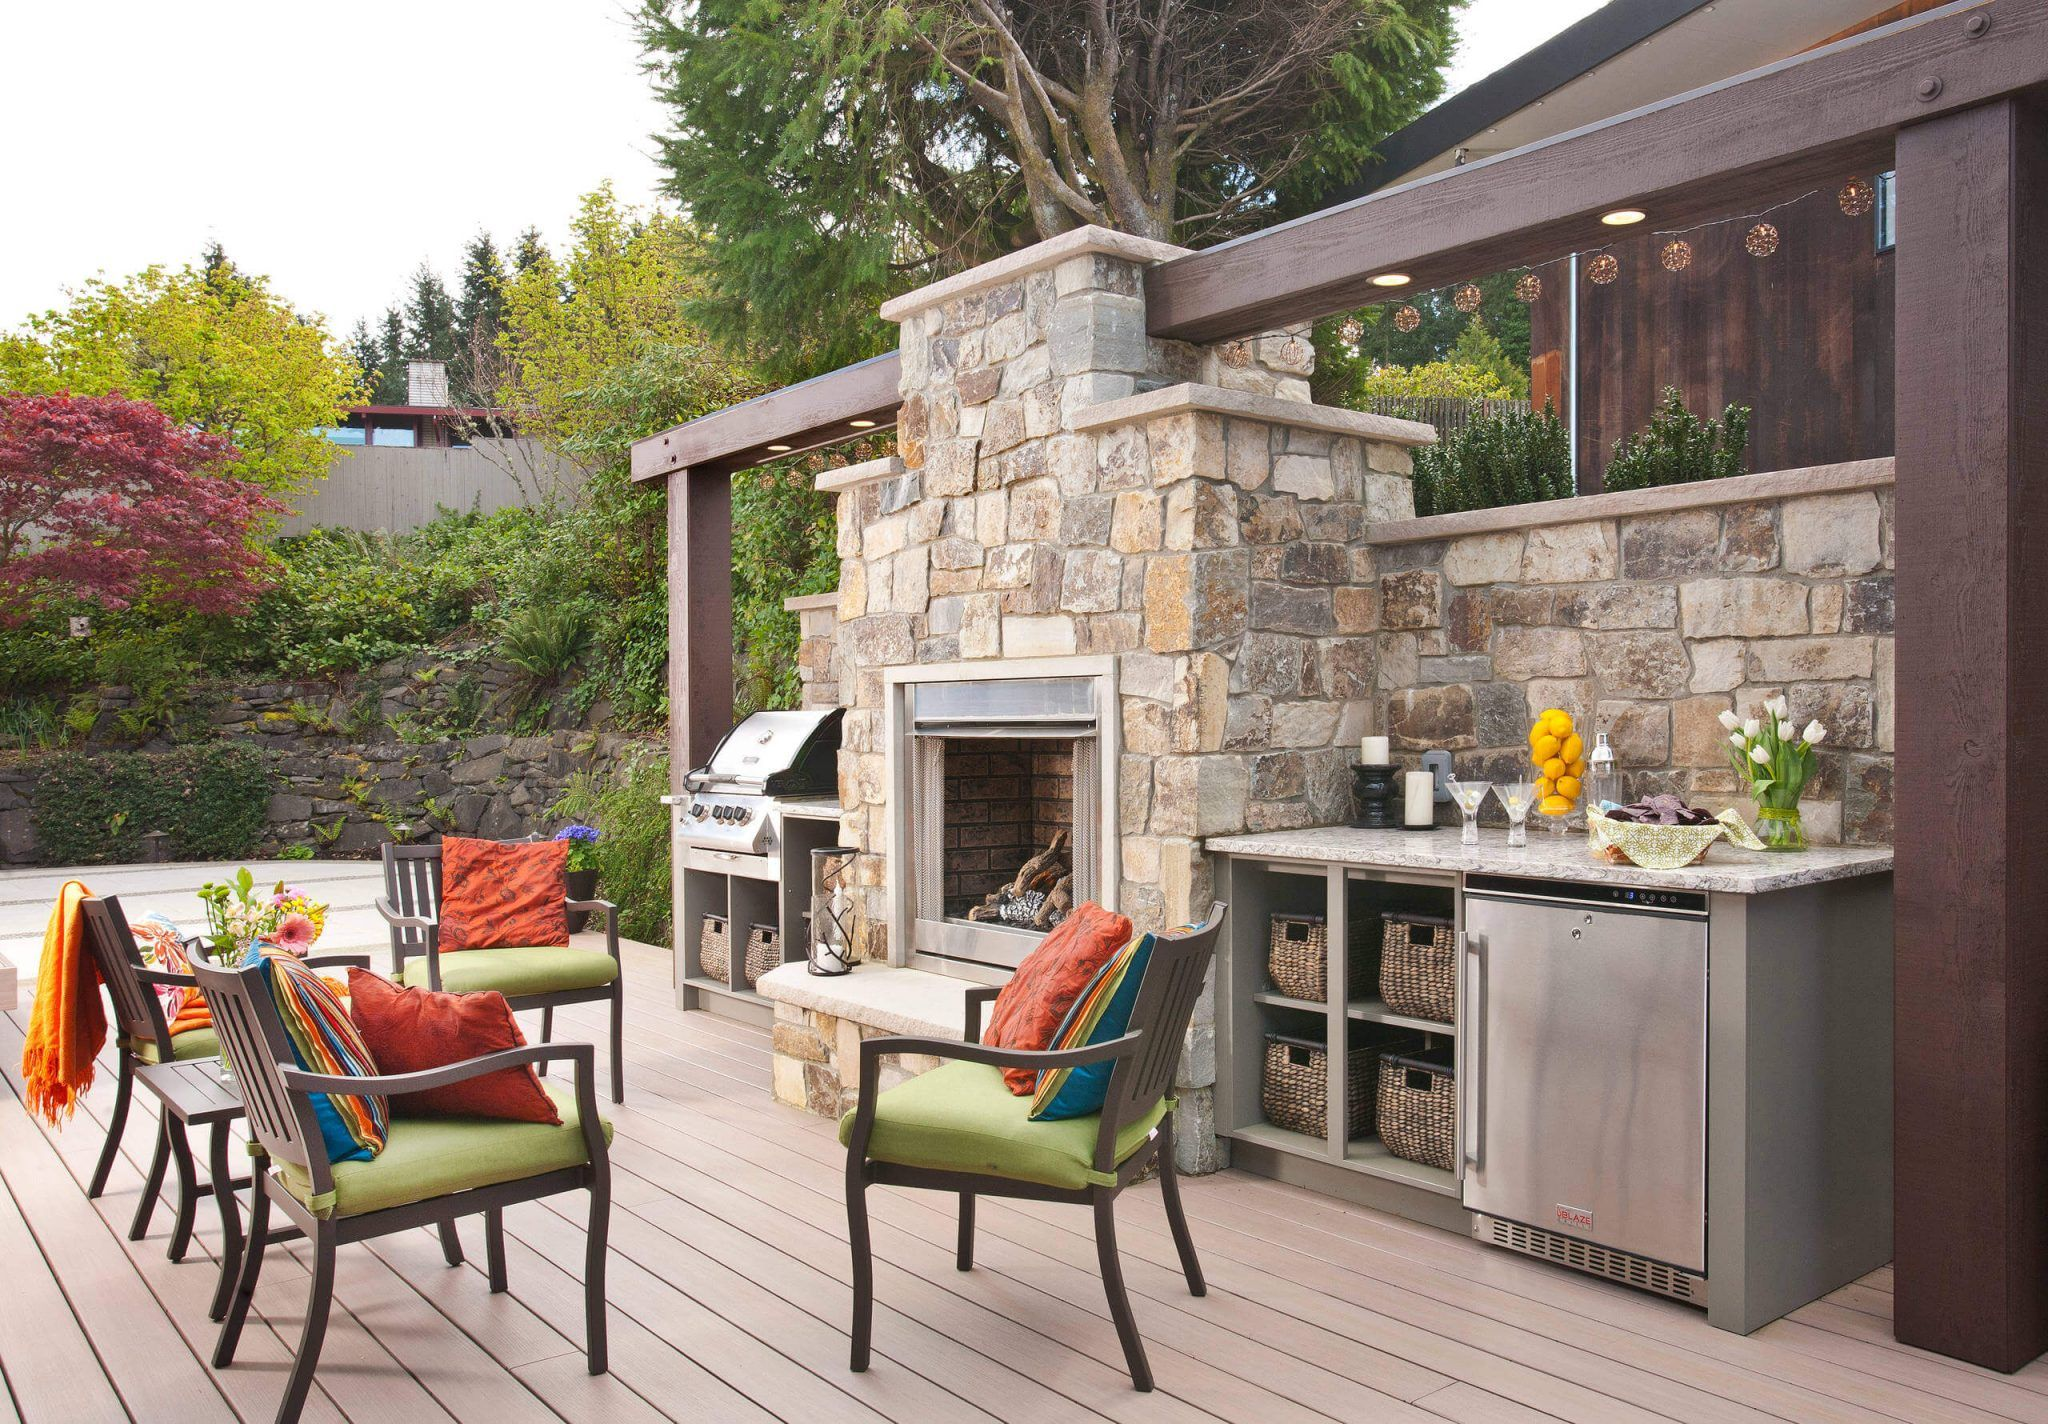 60 innovative outdoor kitchen ideas design for your inspirations rh pinterest com